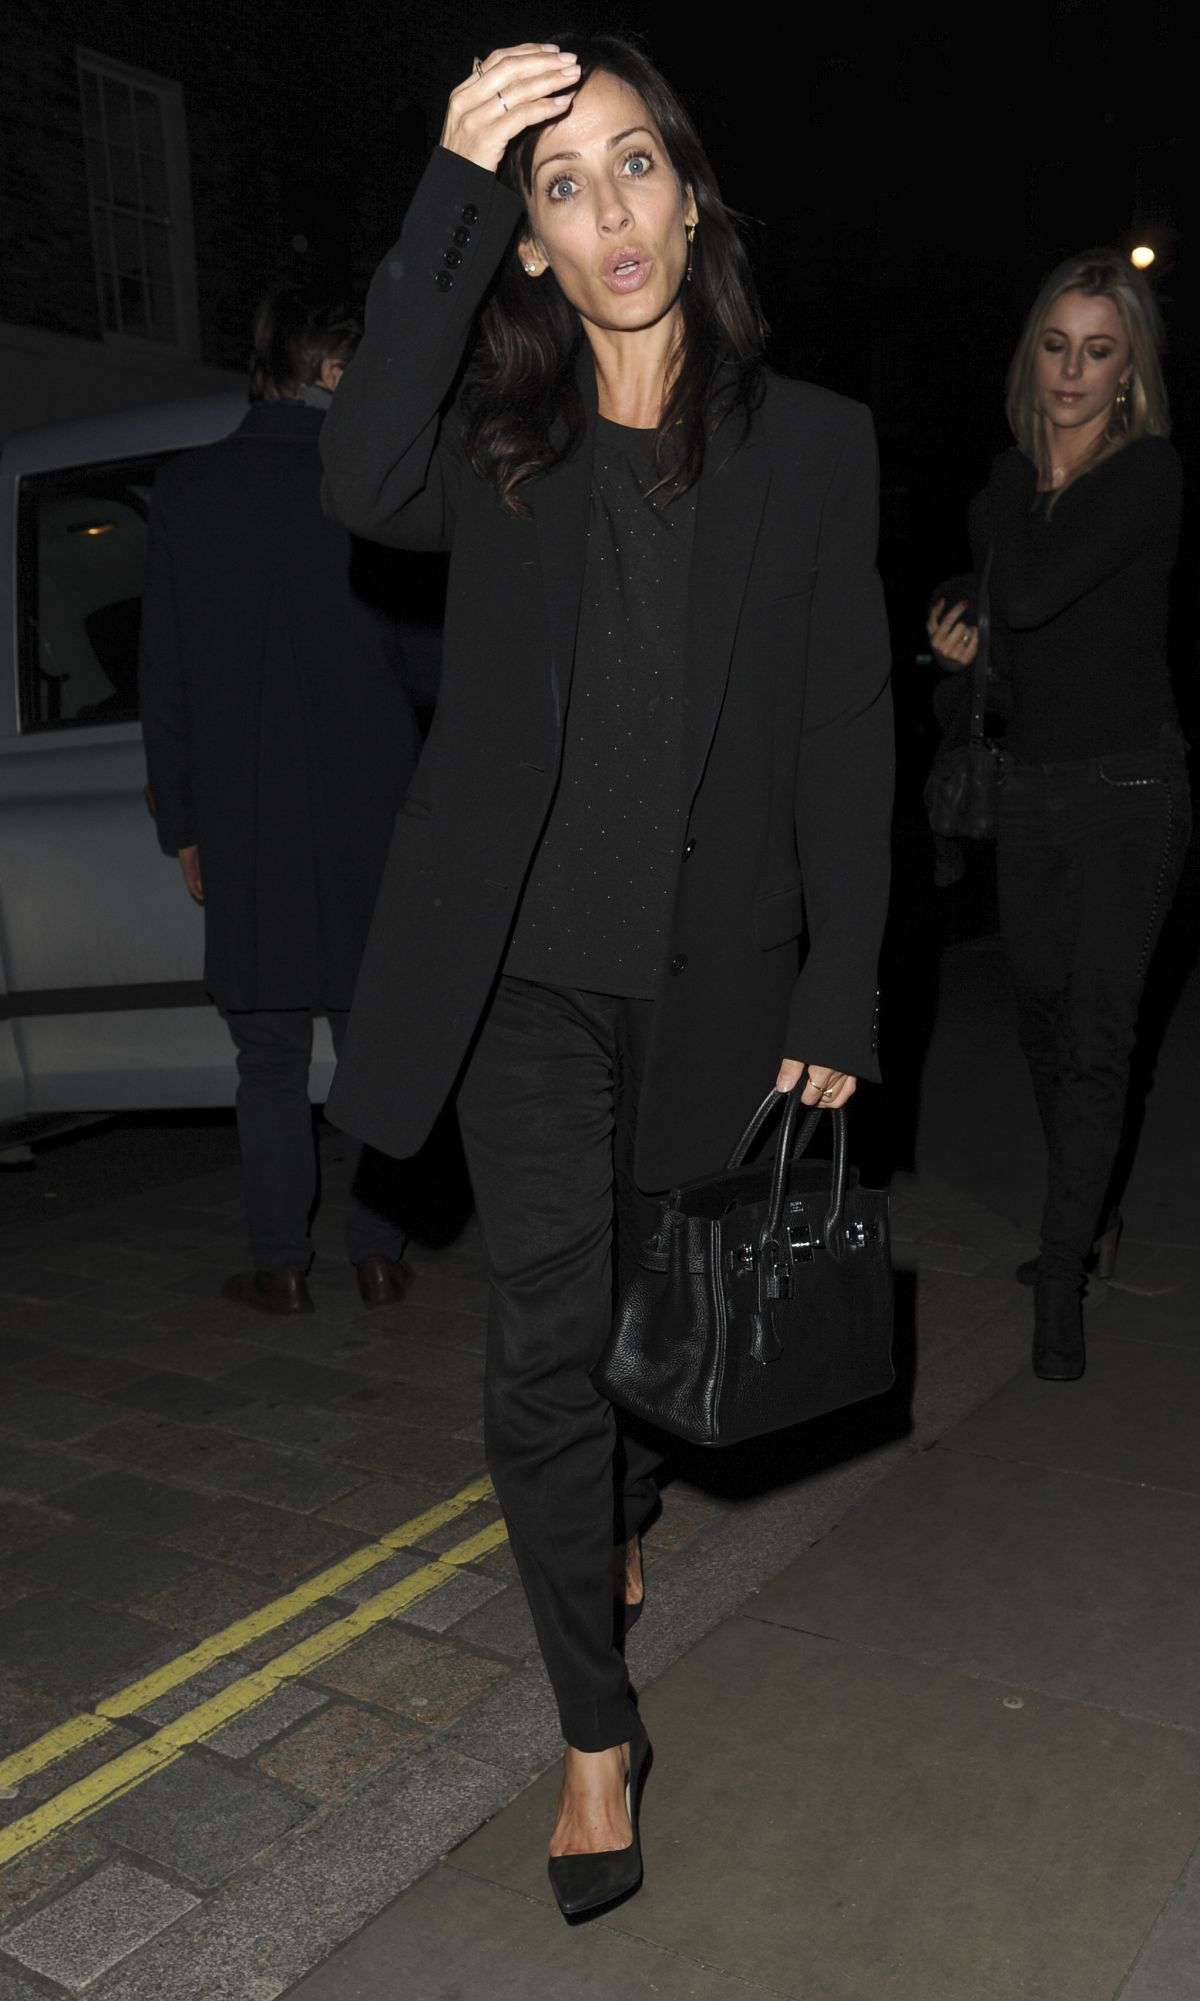 NATALIE IMBRUGLIA at Chiltern Firehouse in London 03/12/2016